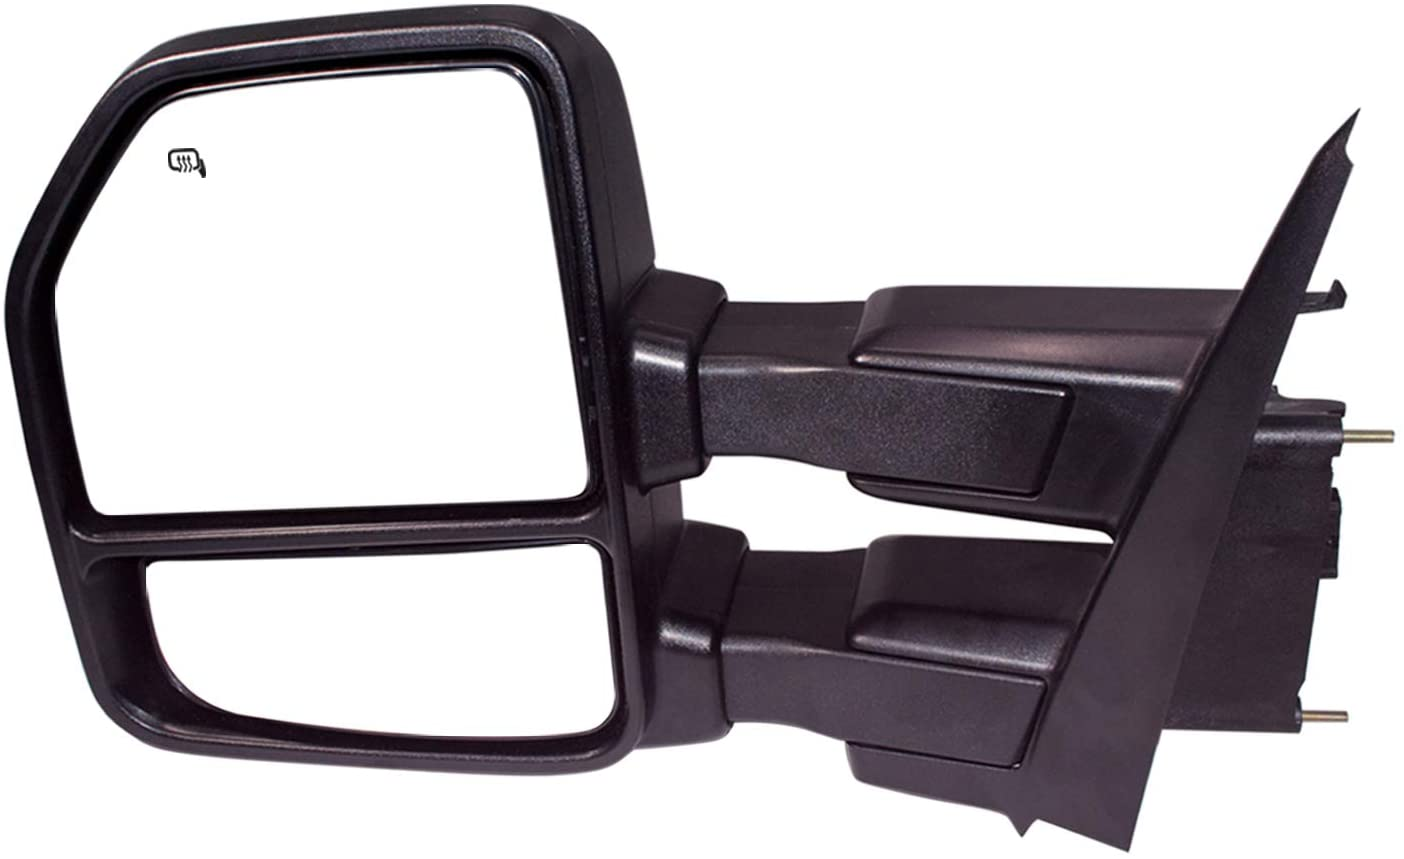 AERDM New towing mirror Black Housing with Temperature sensor fit 2015-2018 F150 Towing Mirrors w//Blind Spot with Turn Signal Puddle and Auxiliary Lamp